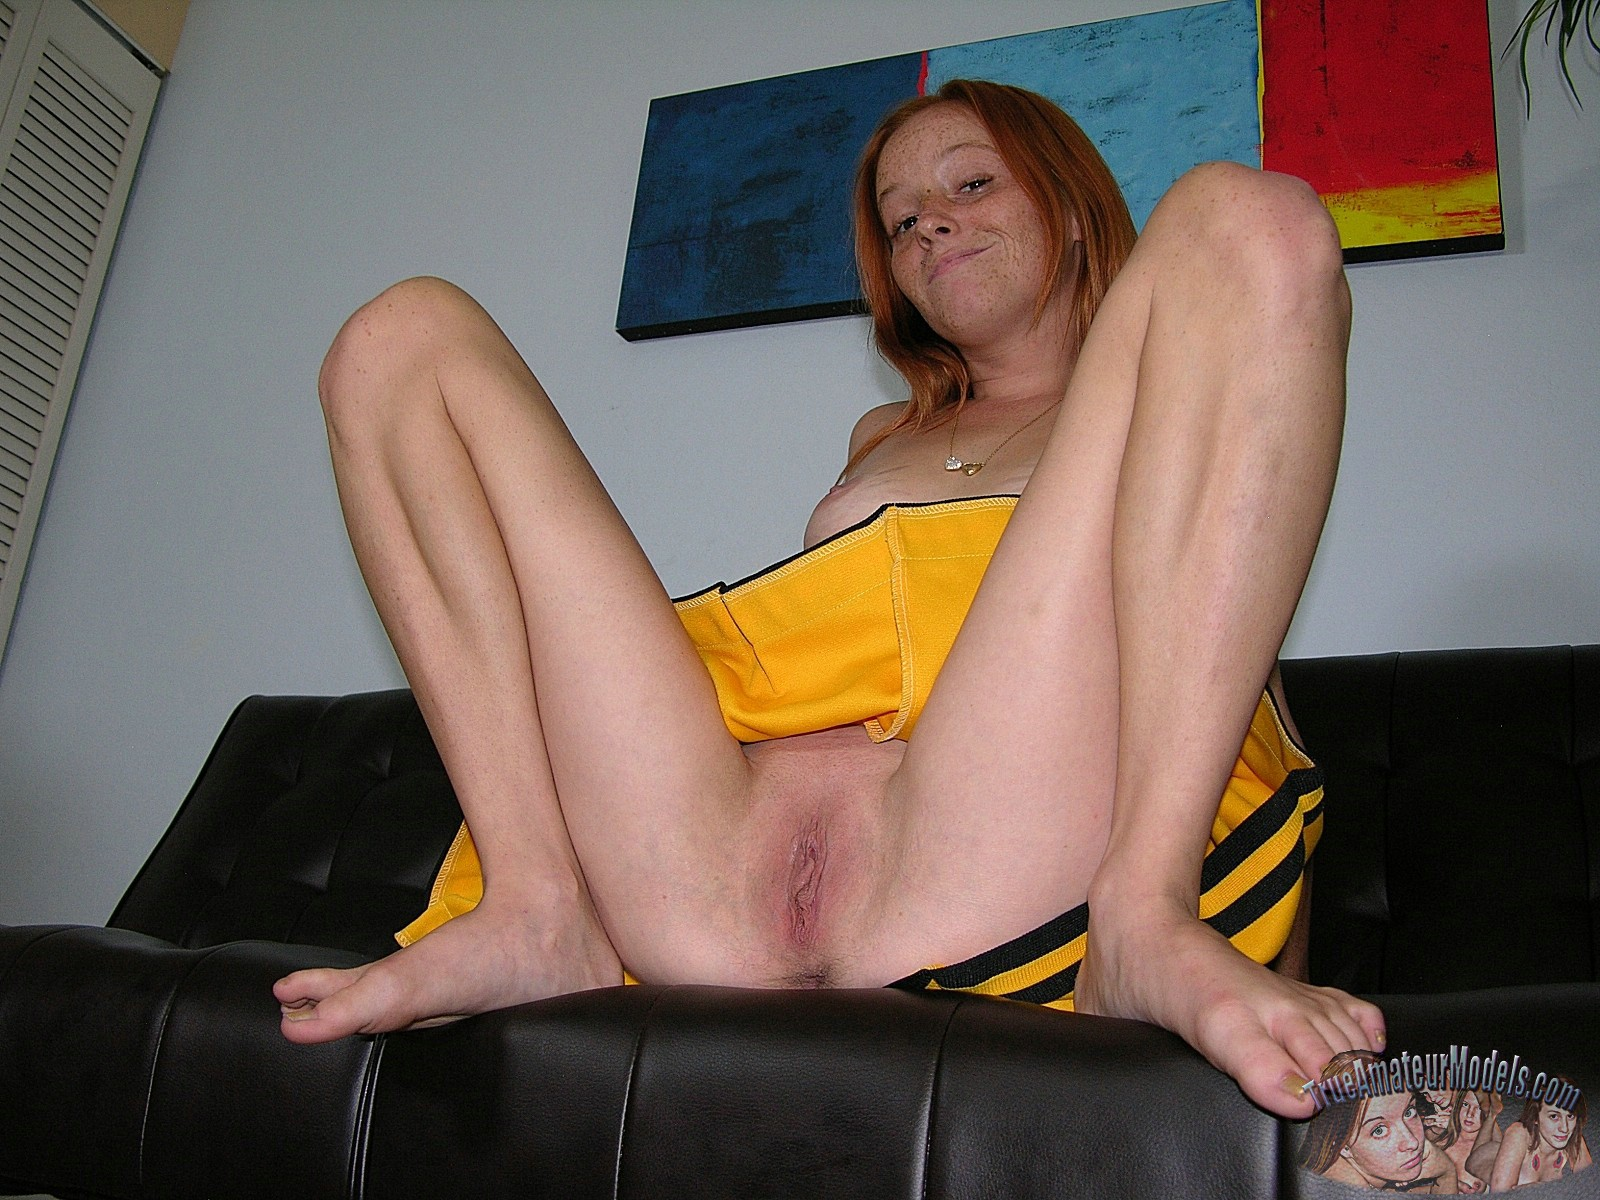 Girl next door redhead